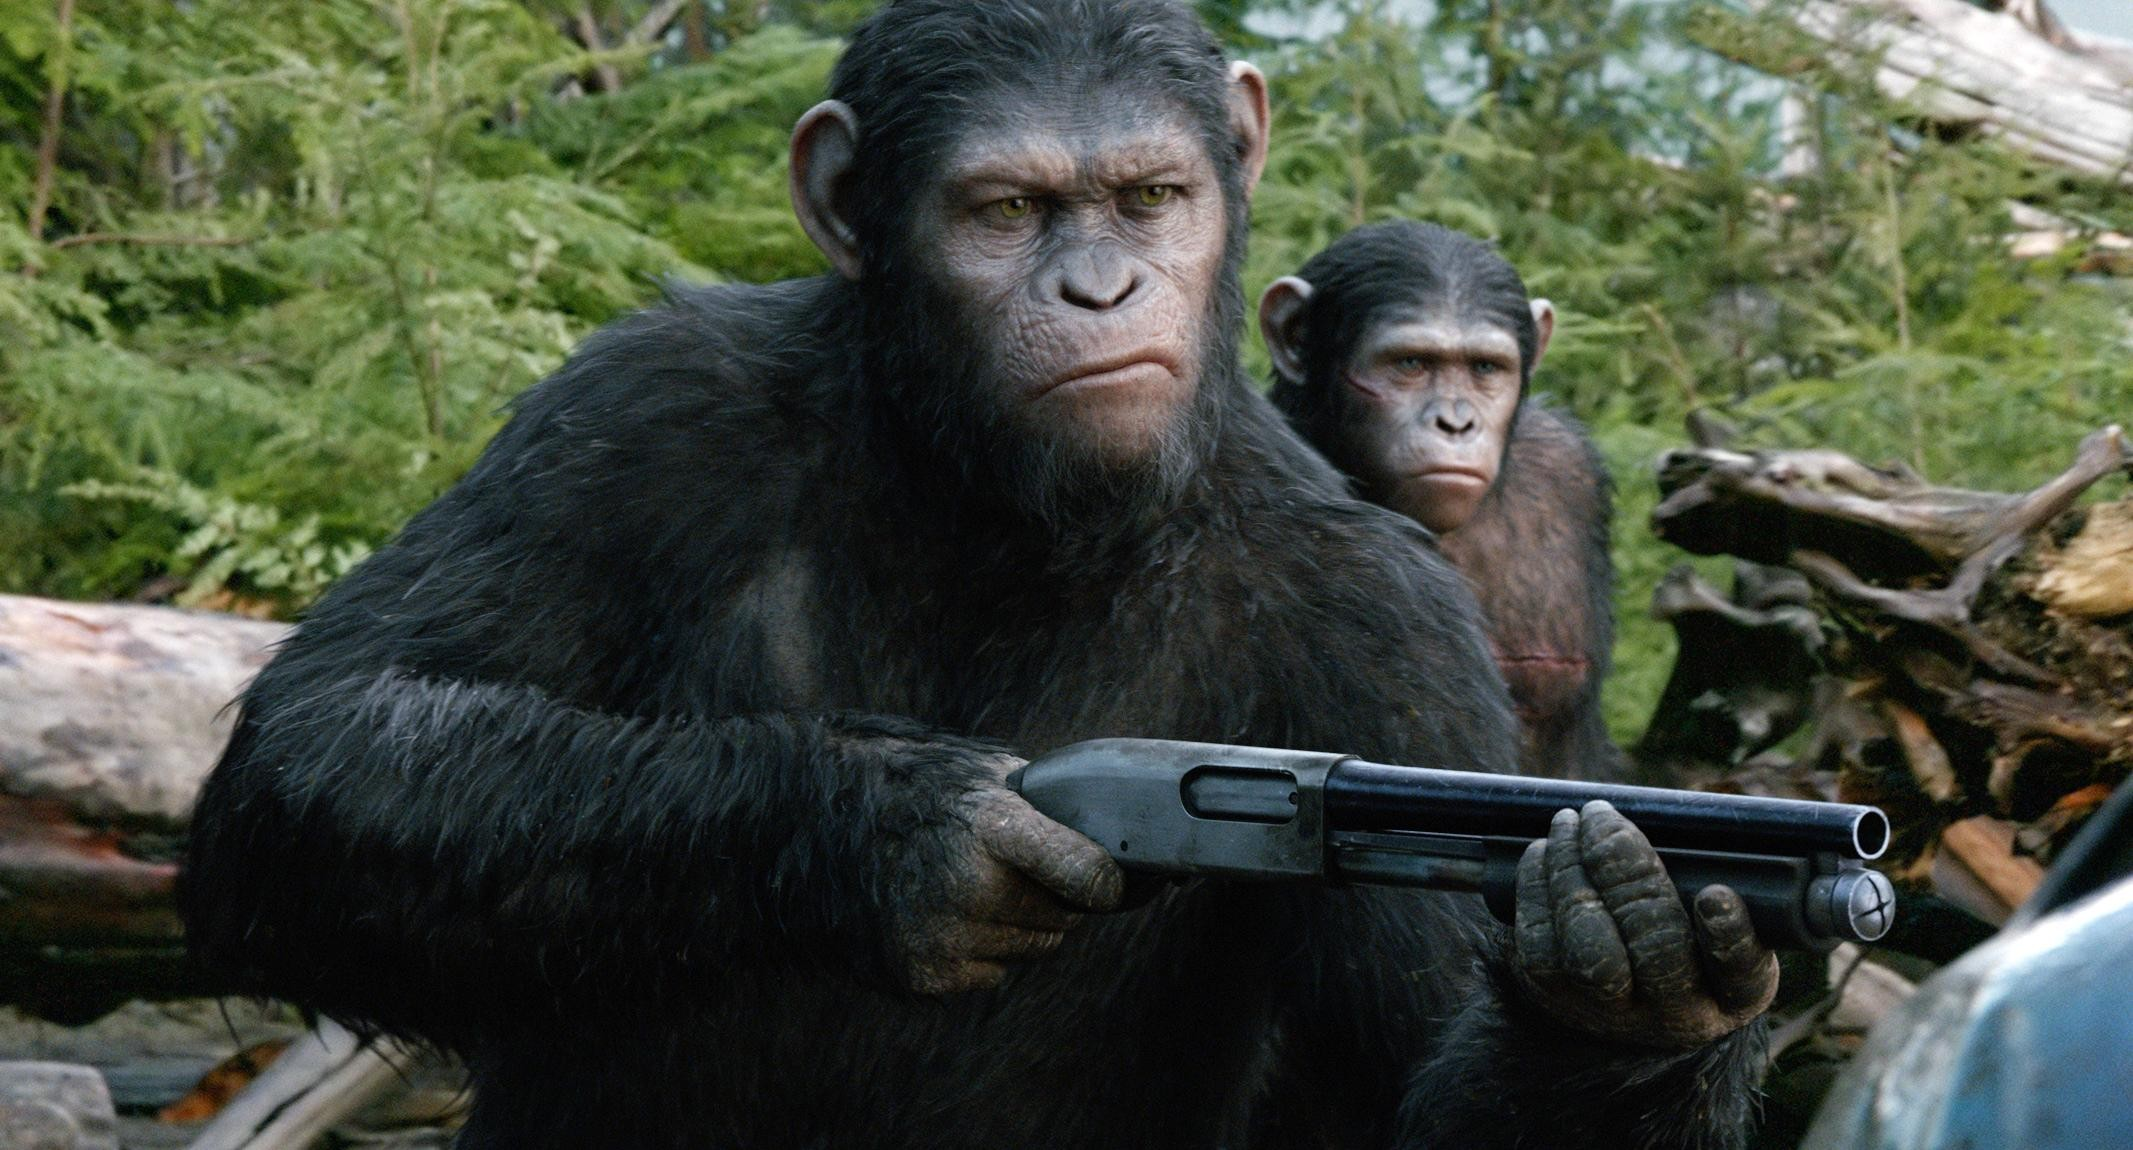 Box Office: 'Apes 2' Rules Soft Weekend With $36M; 'Sex Tape' Bombs